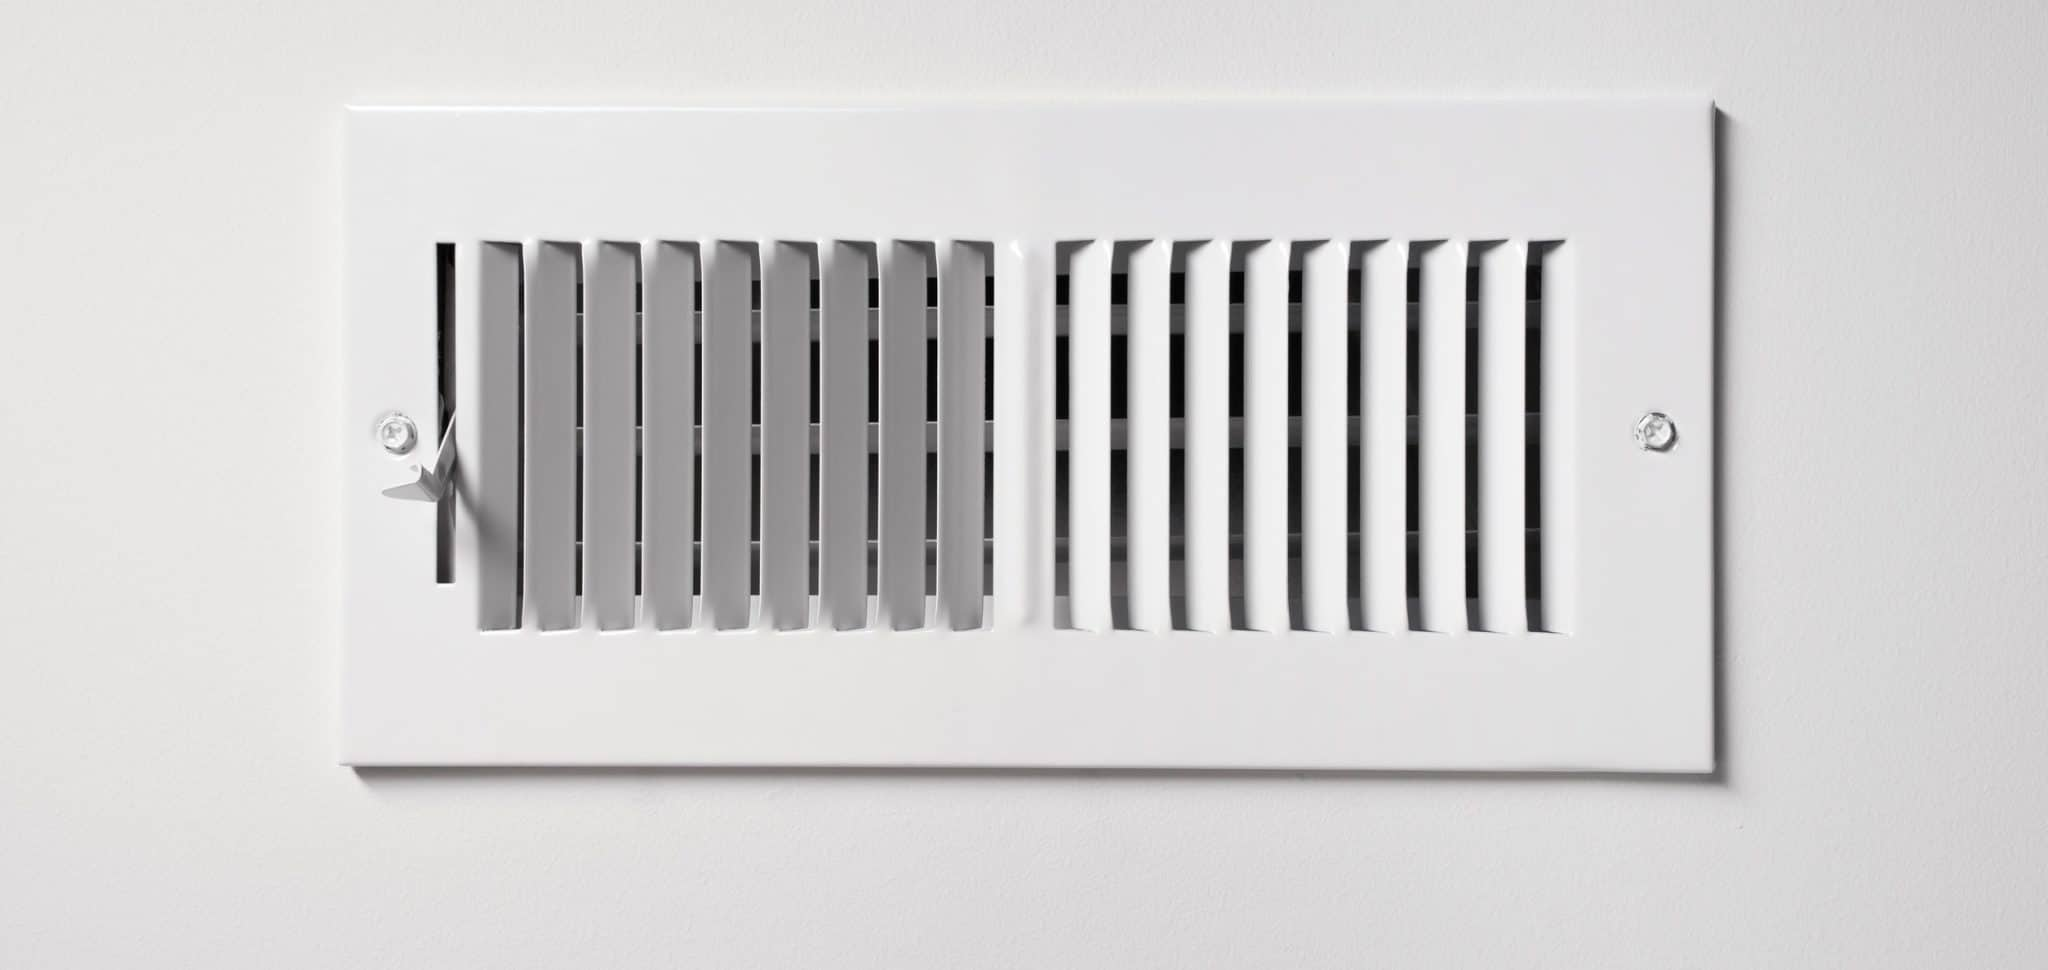 A heating cooling vent register on the wall of a home